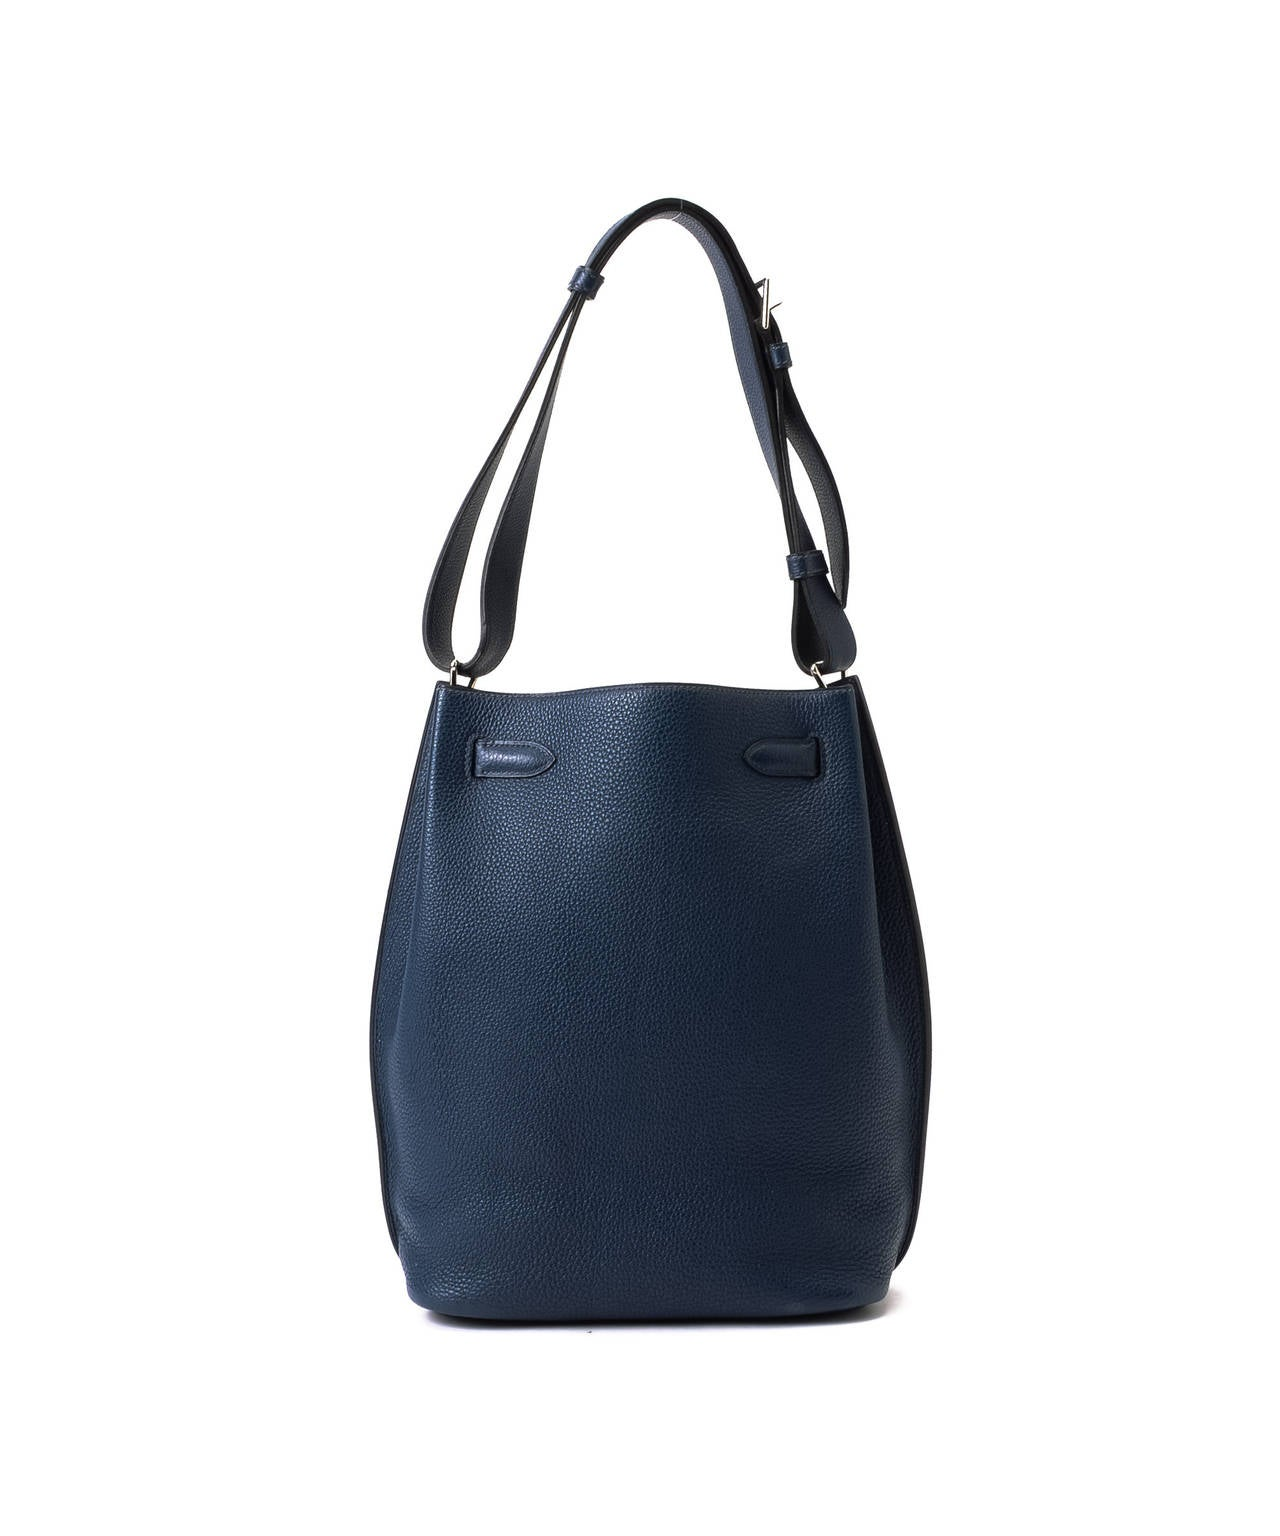 price of a birkin bag - Herm��s Bleu De Prusse So Kelly 22 in Togo leather at 1stdibs